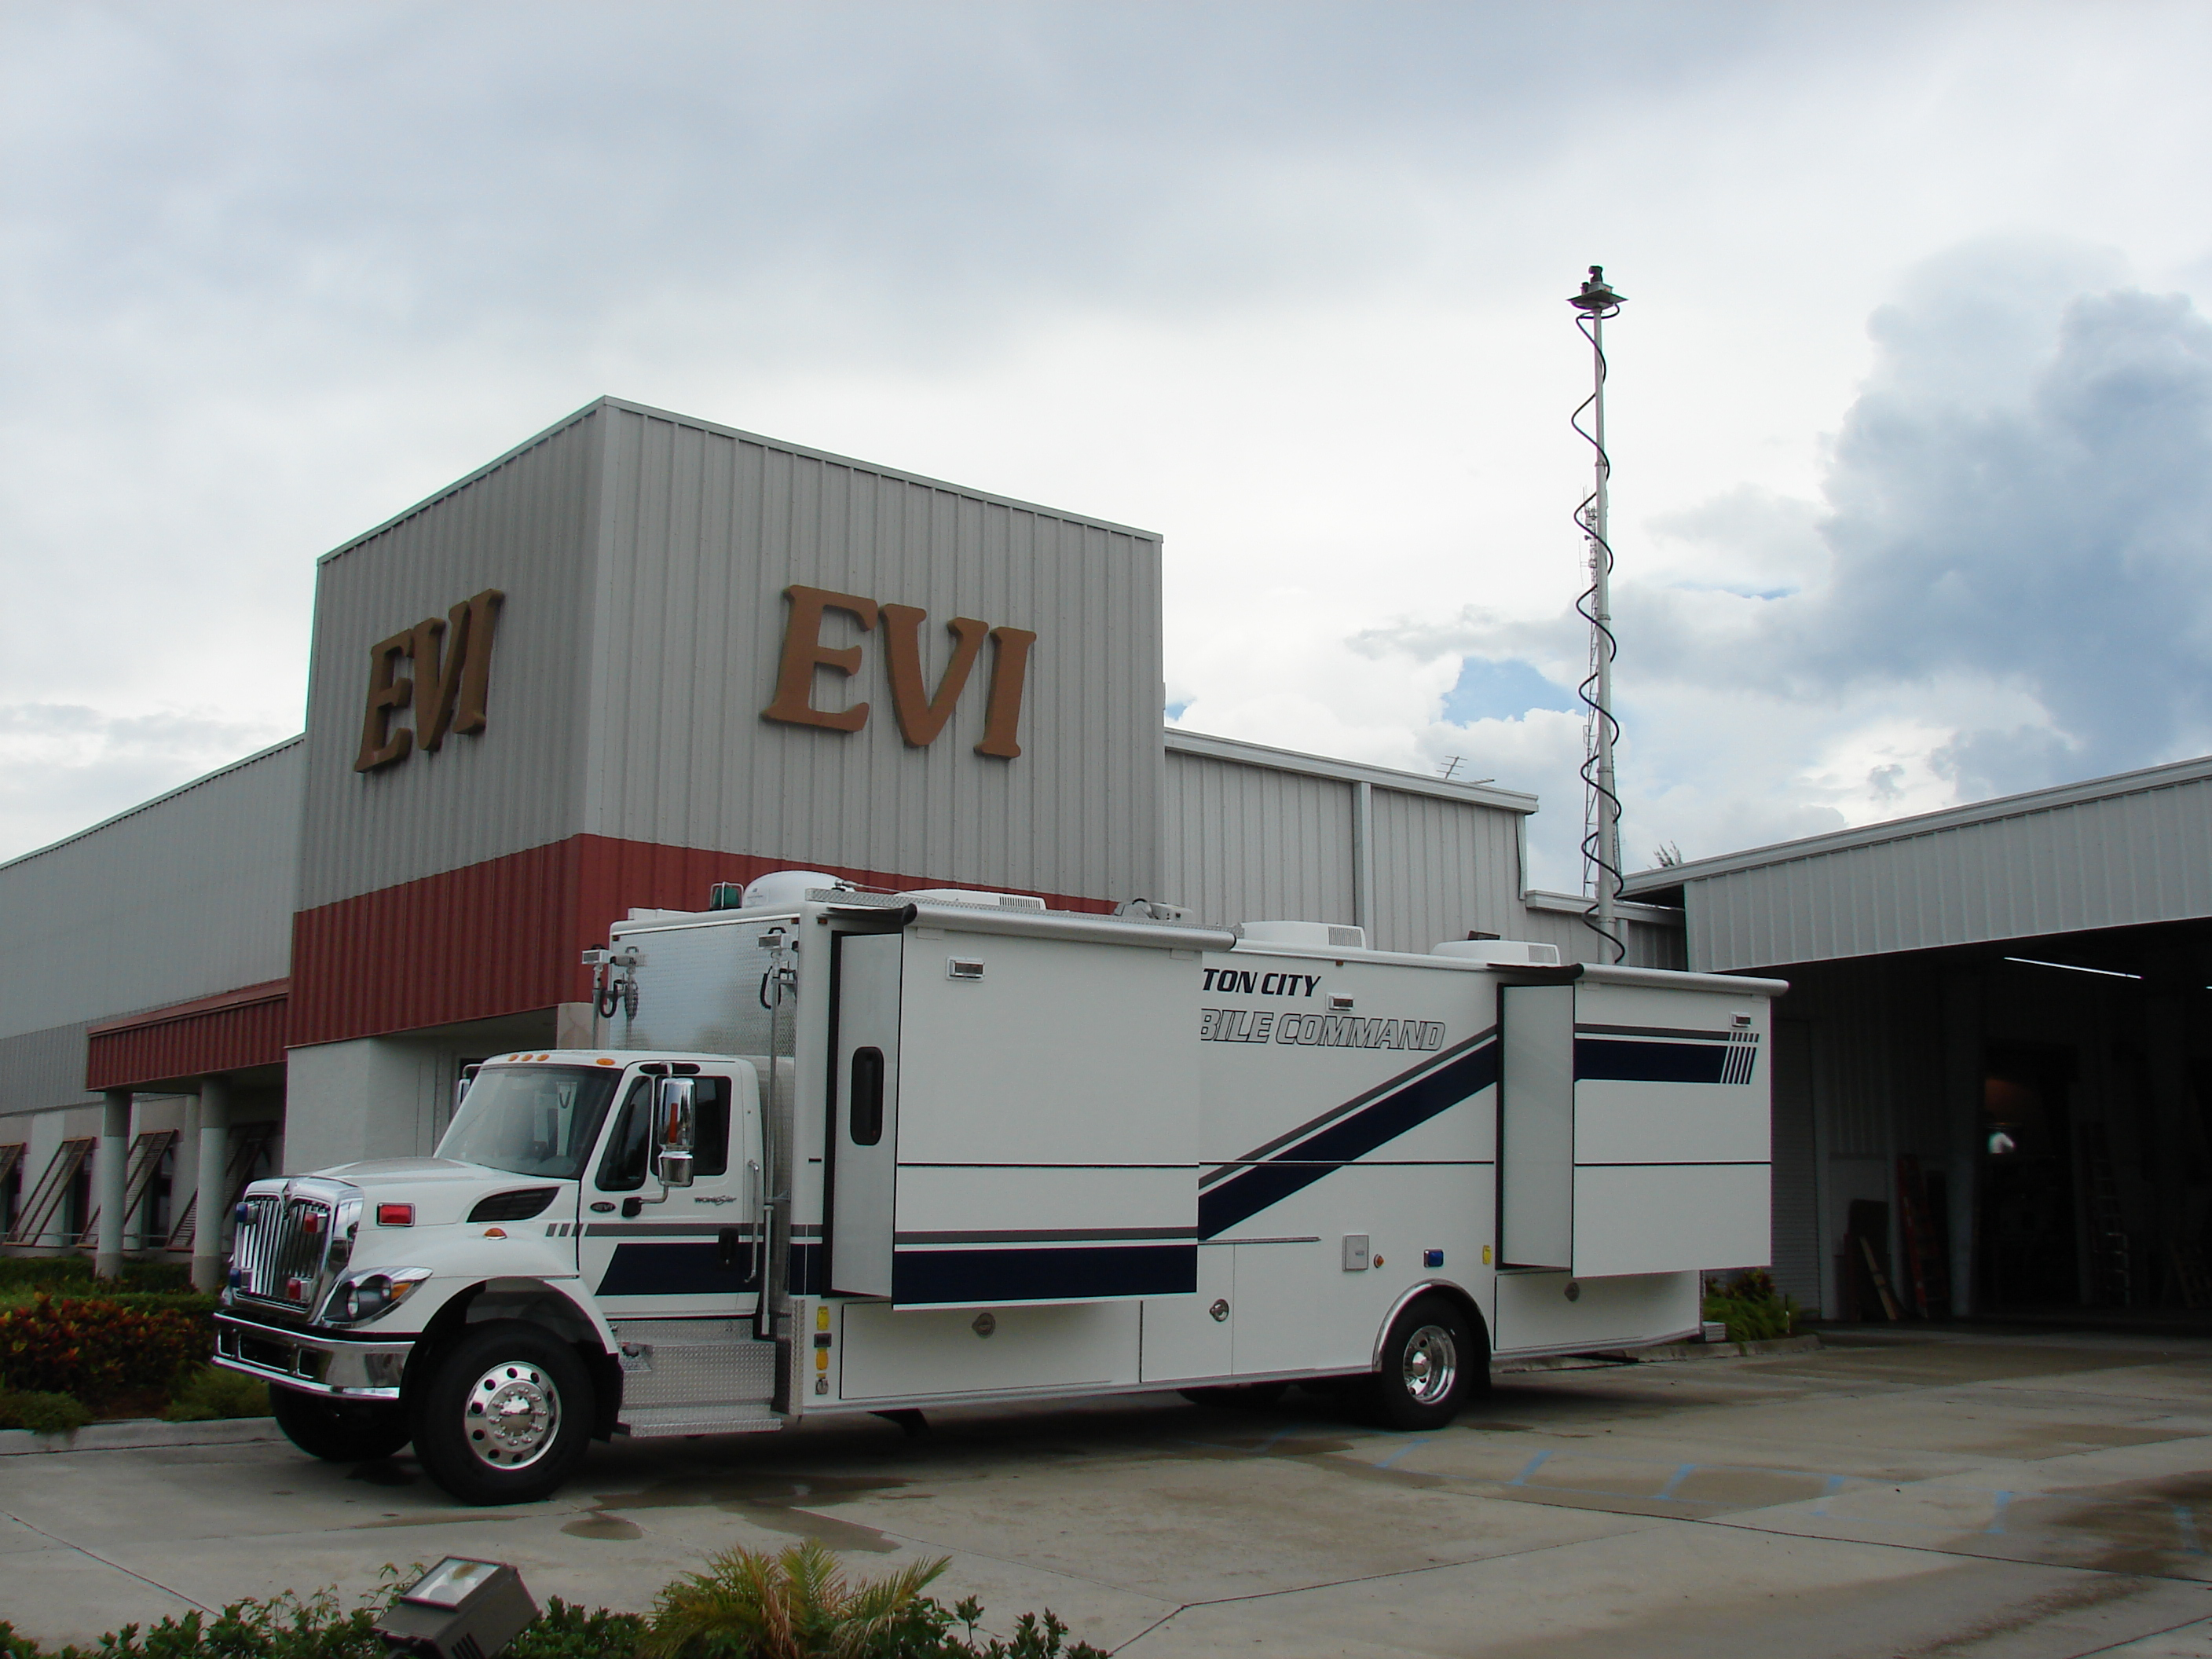 EVI Mobile Communications/Command